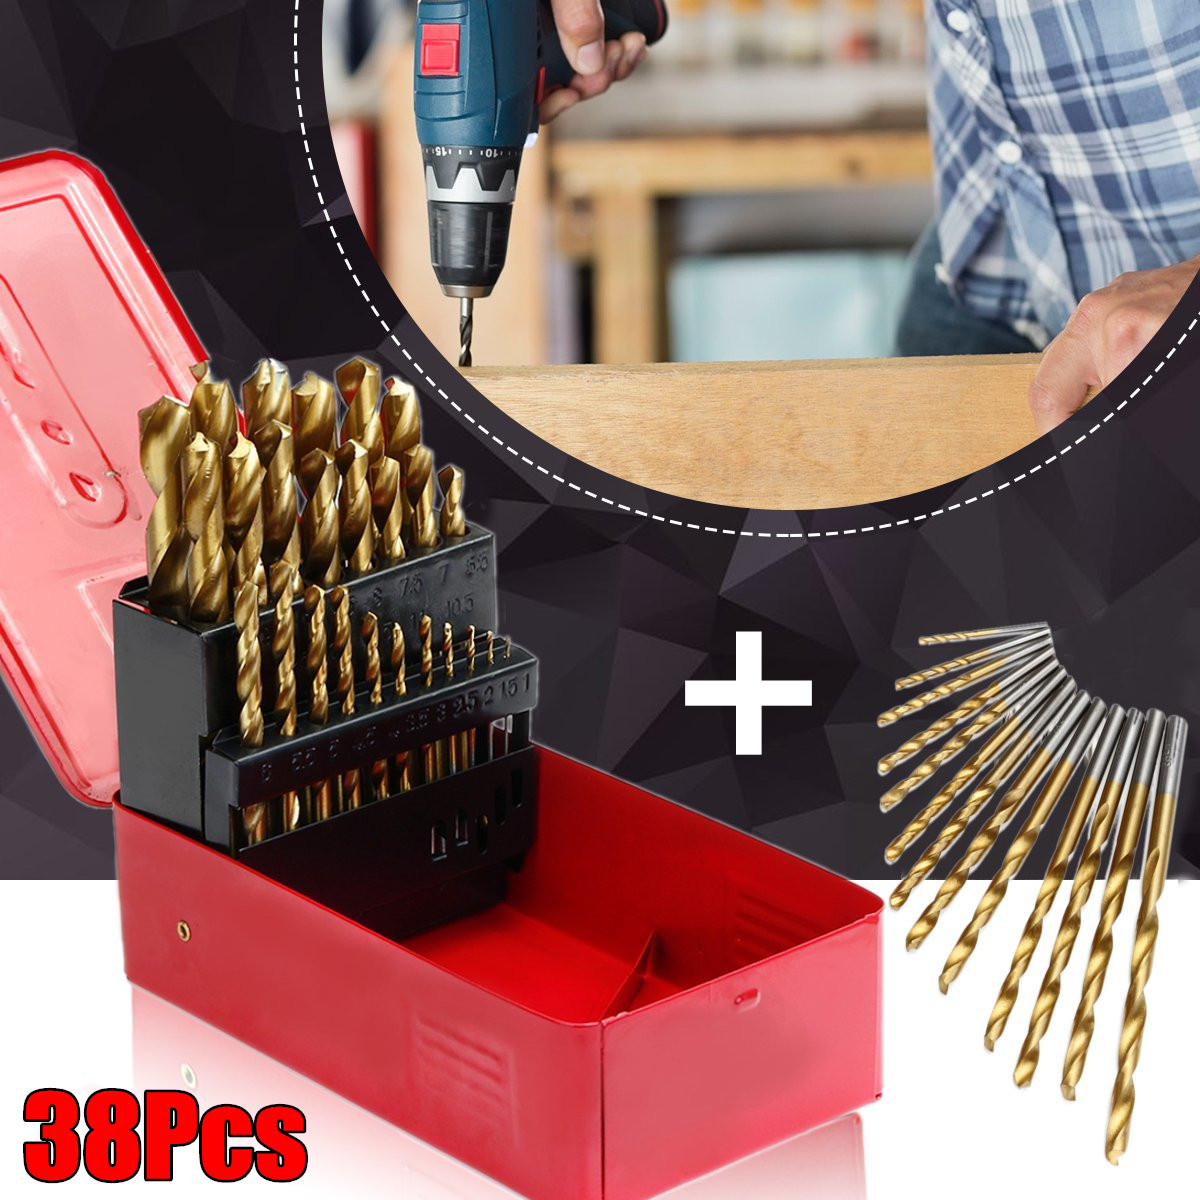 38Pcs HSS High Speed Steel Drill Bits Set Tool Titanium Coated Drill Bits High Quality Power Tools 1-13mm kcchstar the eye of god high quality 316 titanium steel necklaces golden blue